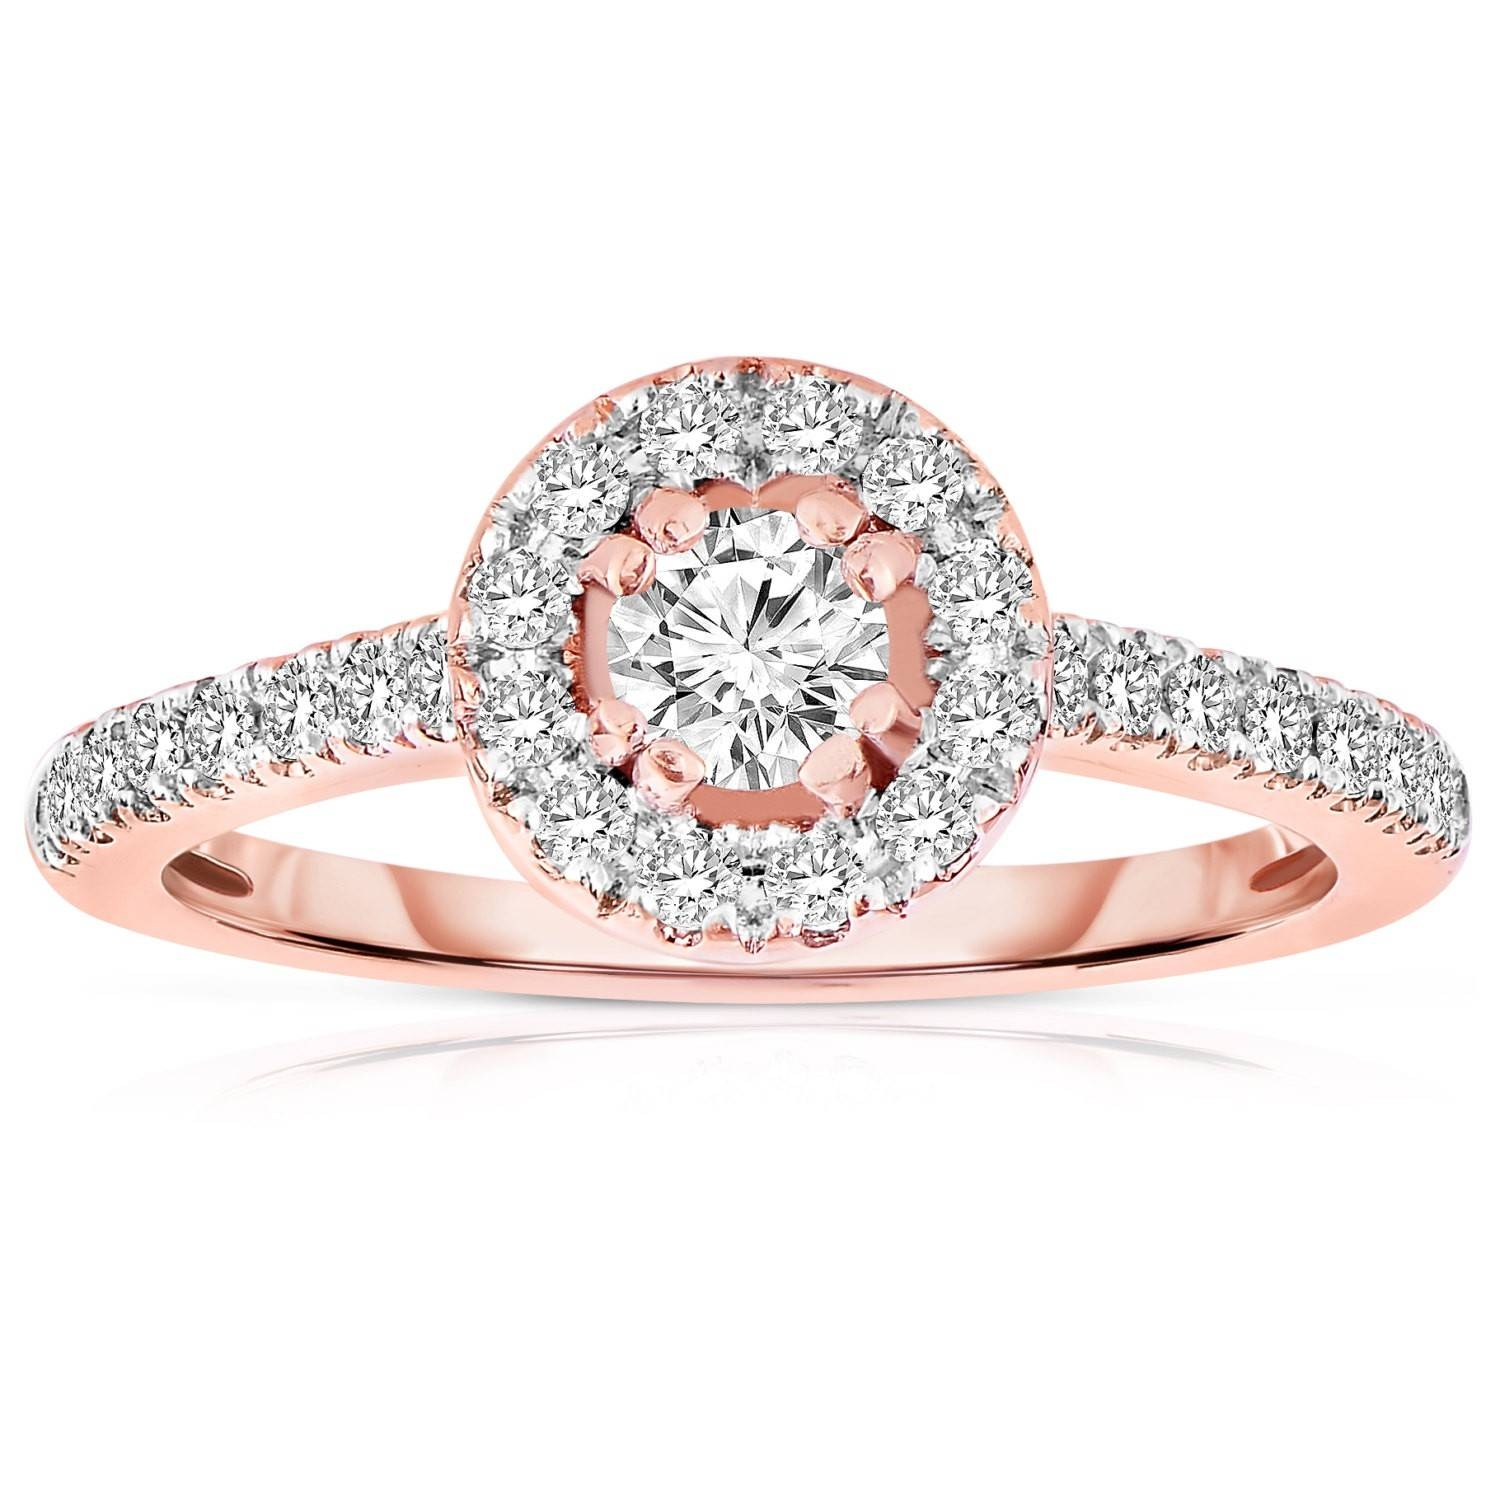 Half Carat Round Cut Halo Diamond Engagement Ring In Rose Gold Pertaining To Halo Diamond Wedding Rings (View 5 of 15)